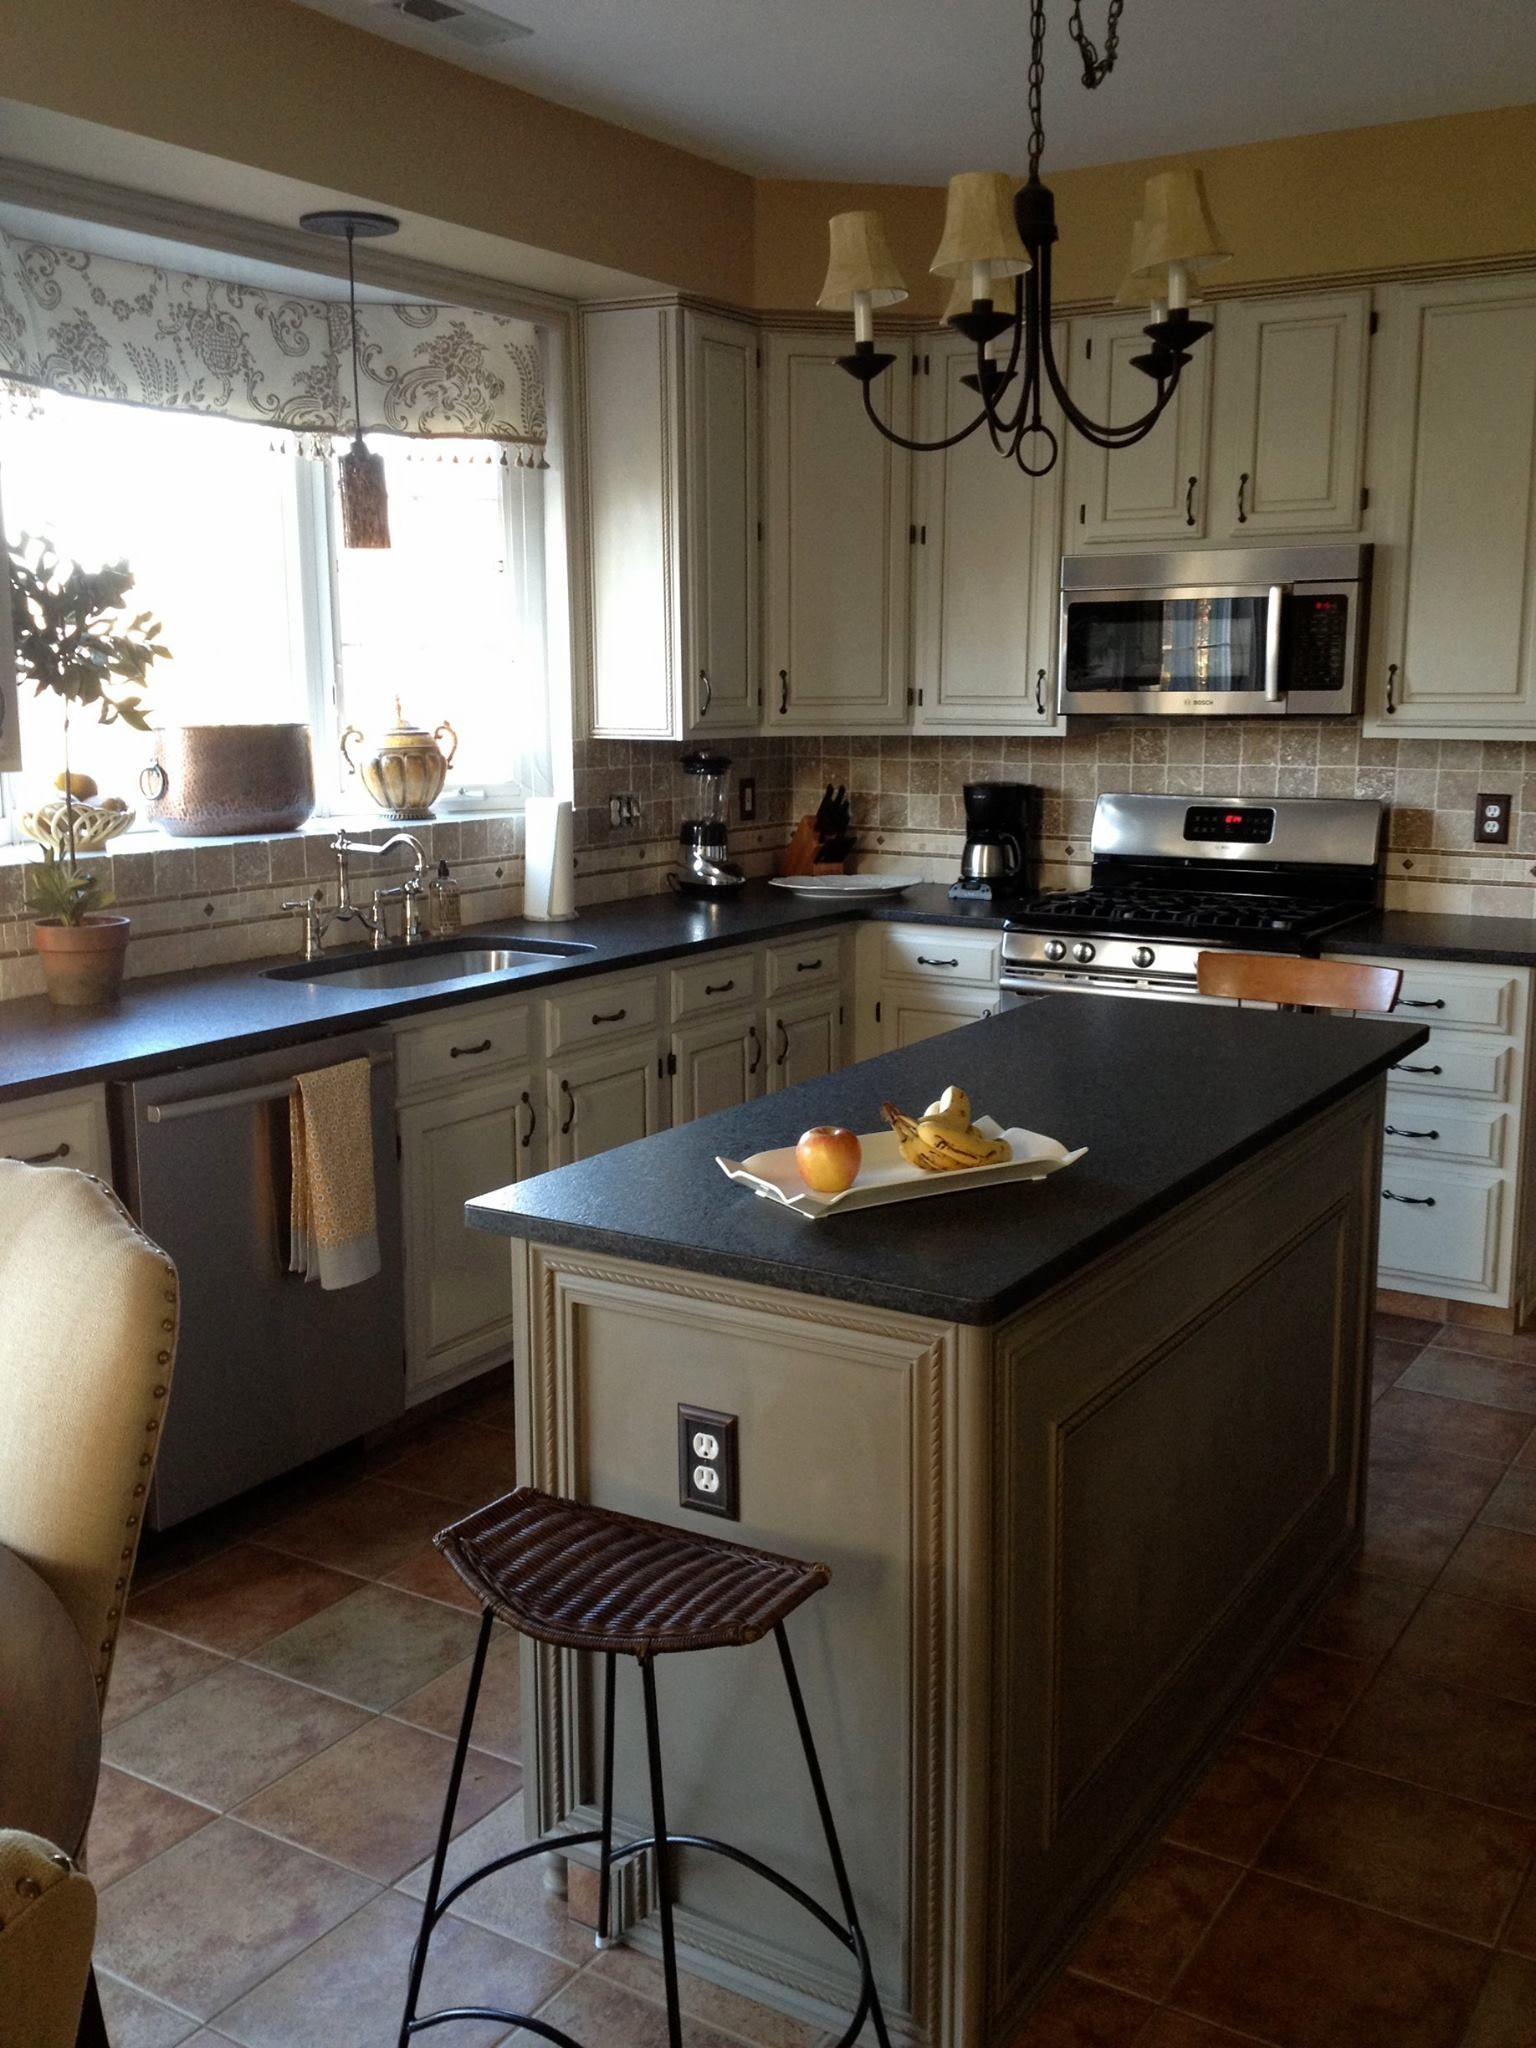 Pin by Kim Hammel on painted furniture Kitchen remodel